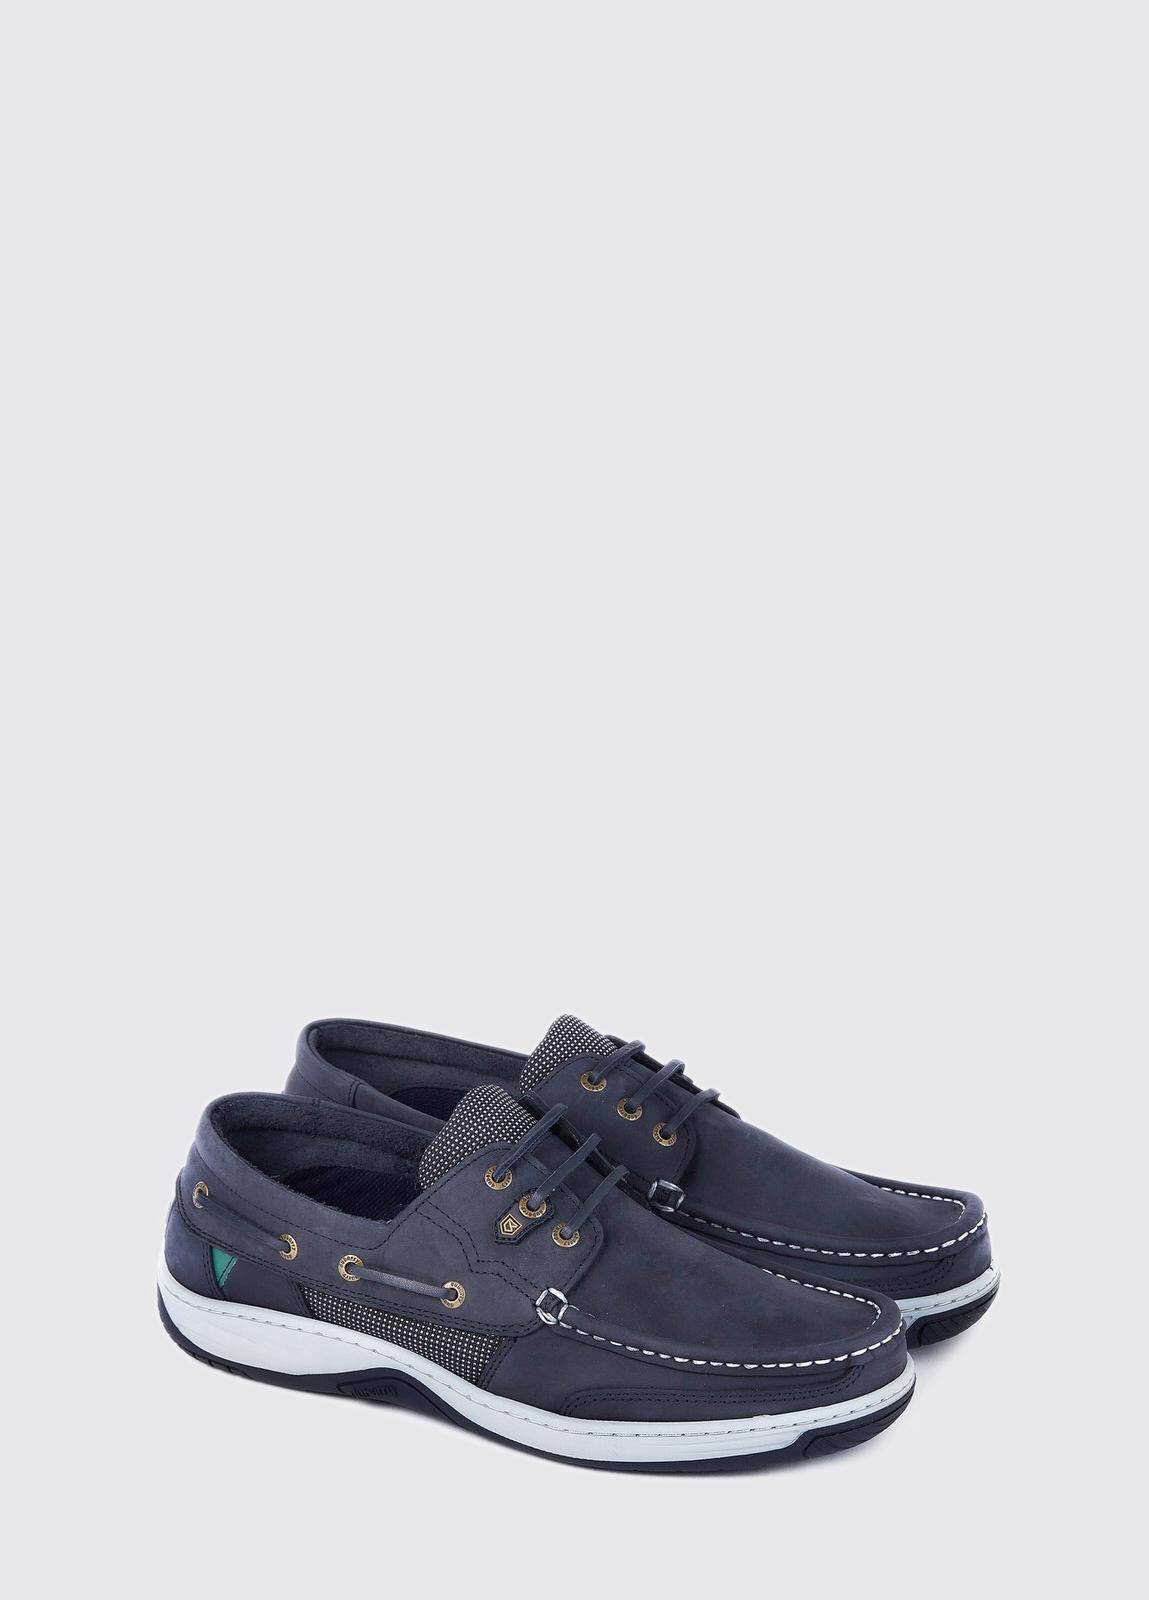 Regatta ExtraFit™ Deck Shoe - Navy